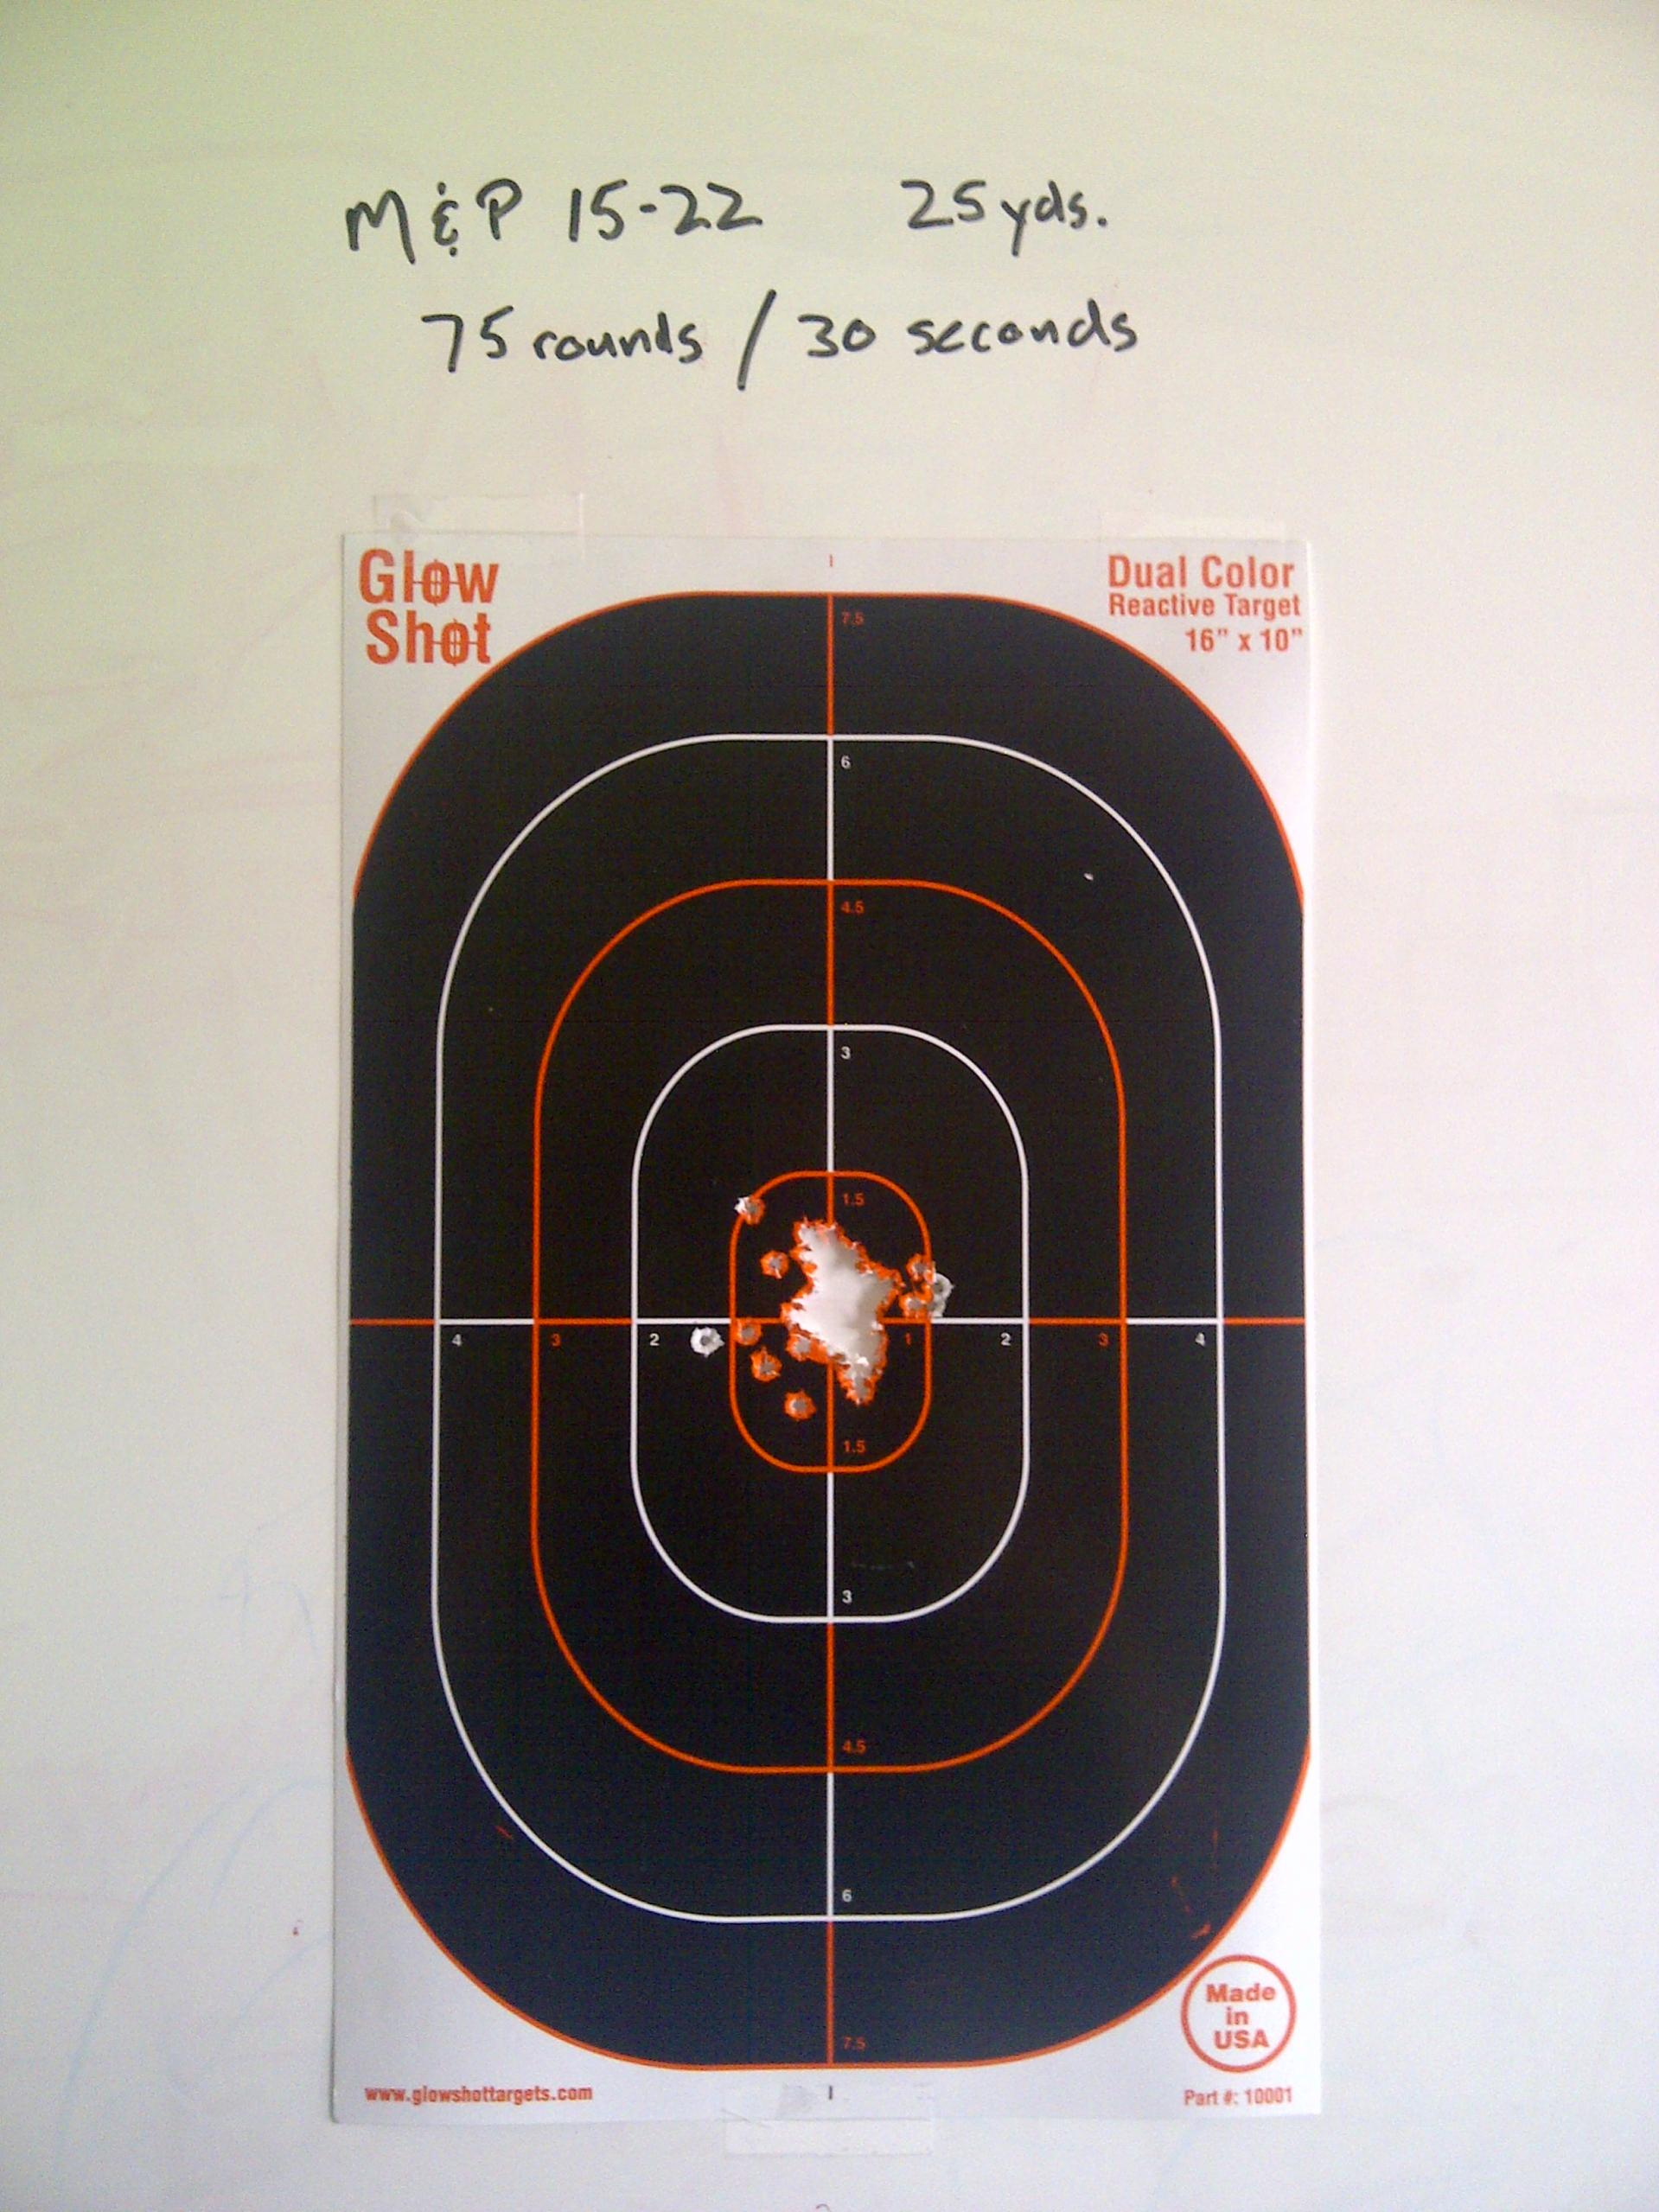 The .22 pistol and round for self defense...My take on it.-m-p15-22-75rds25yds30secs.jpg